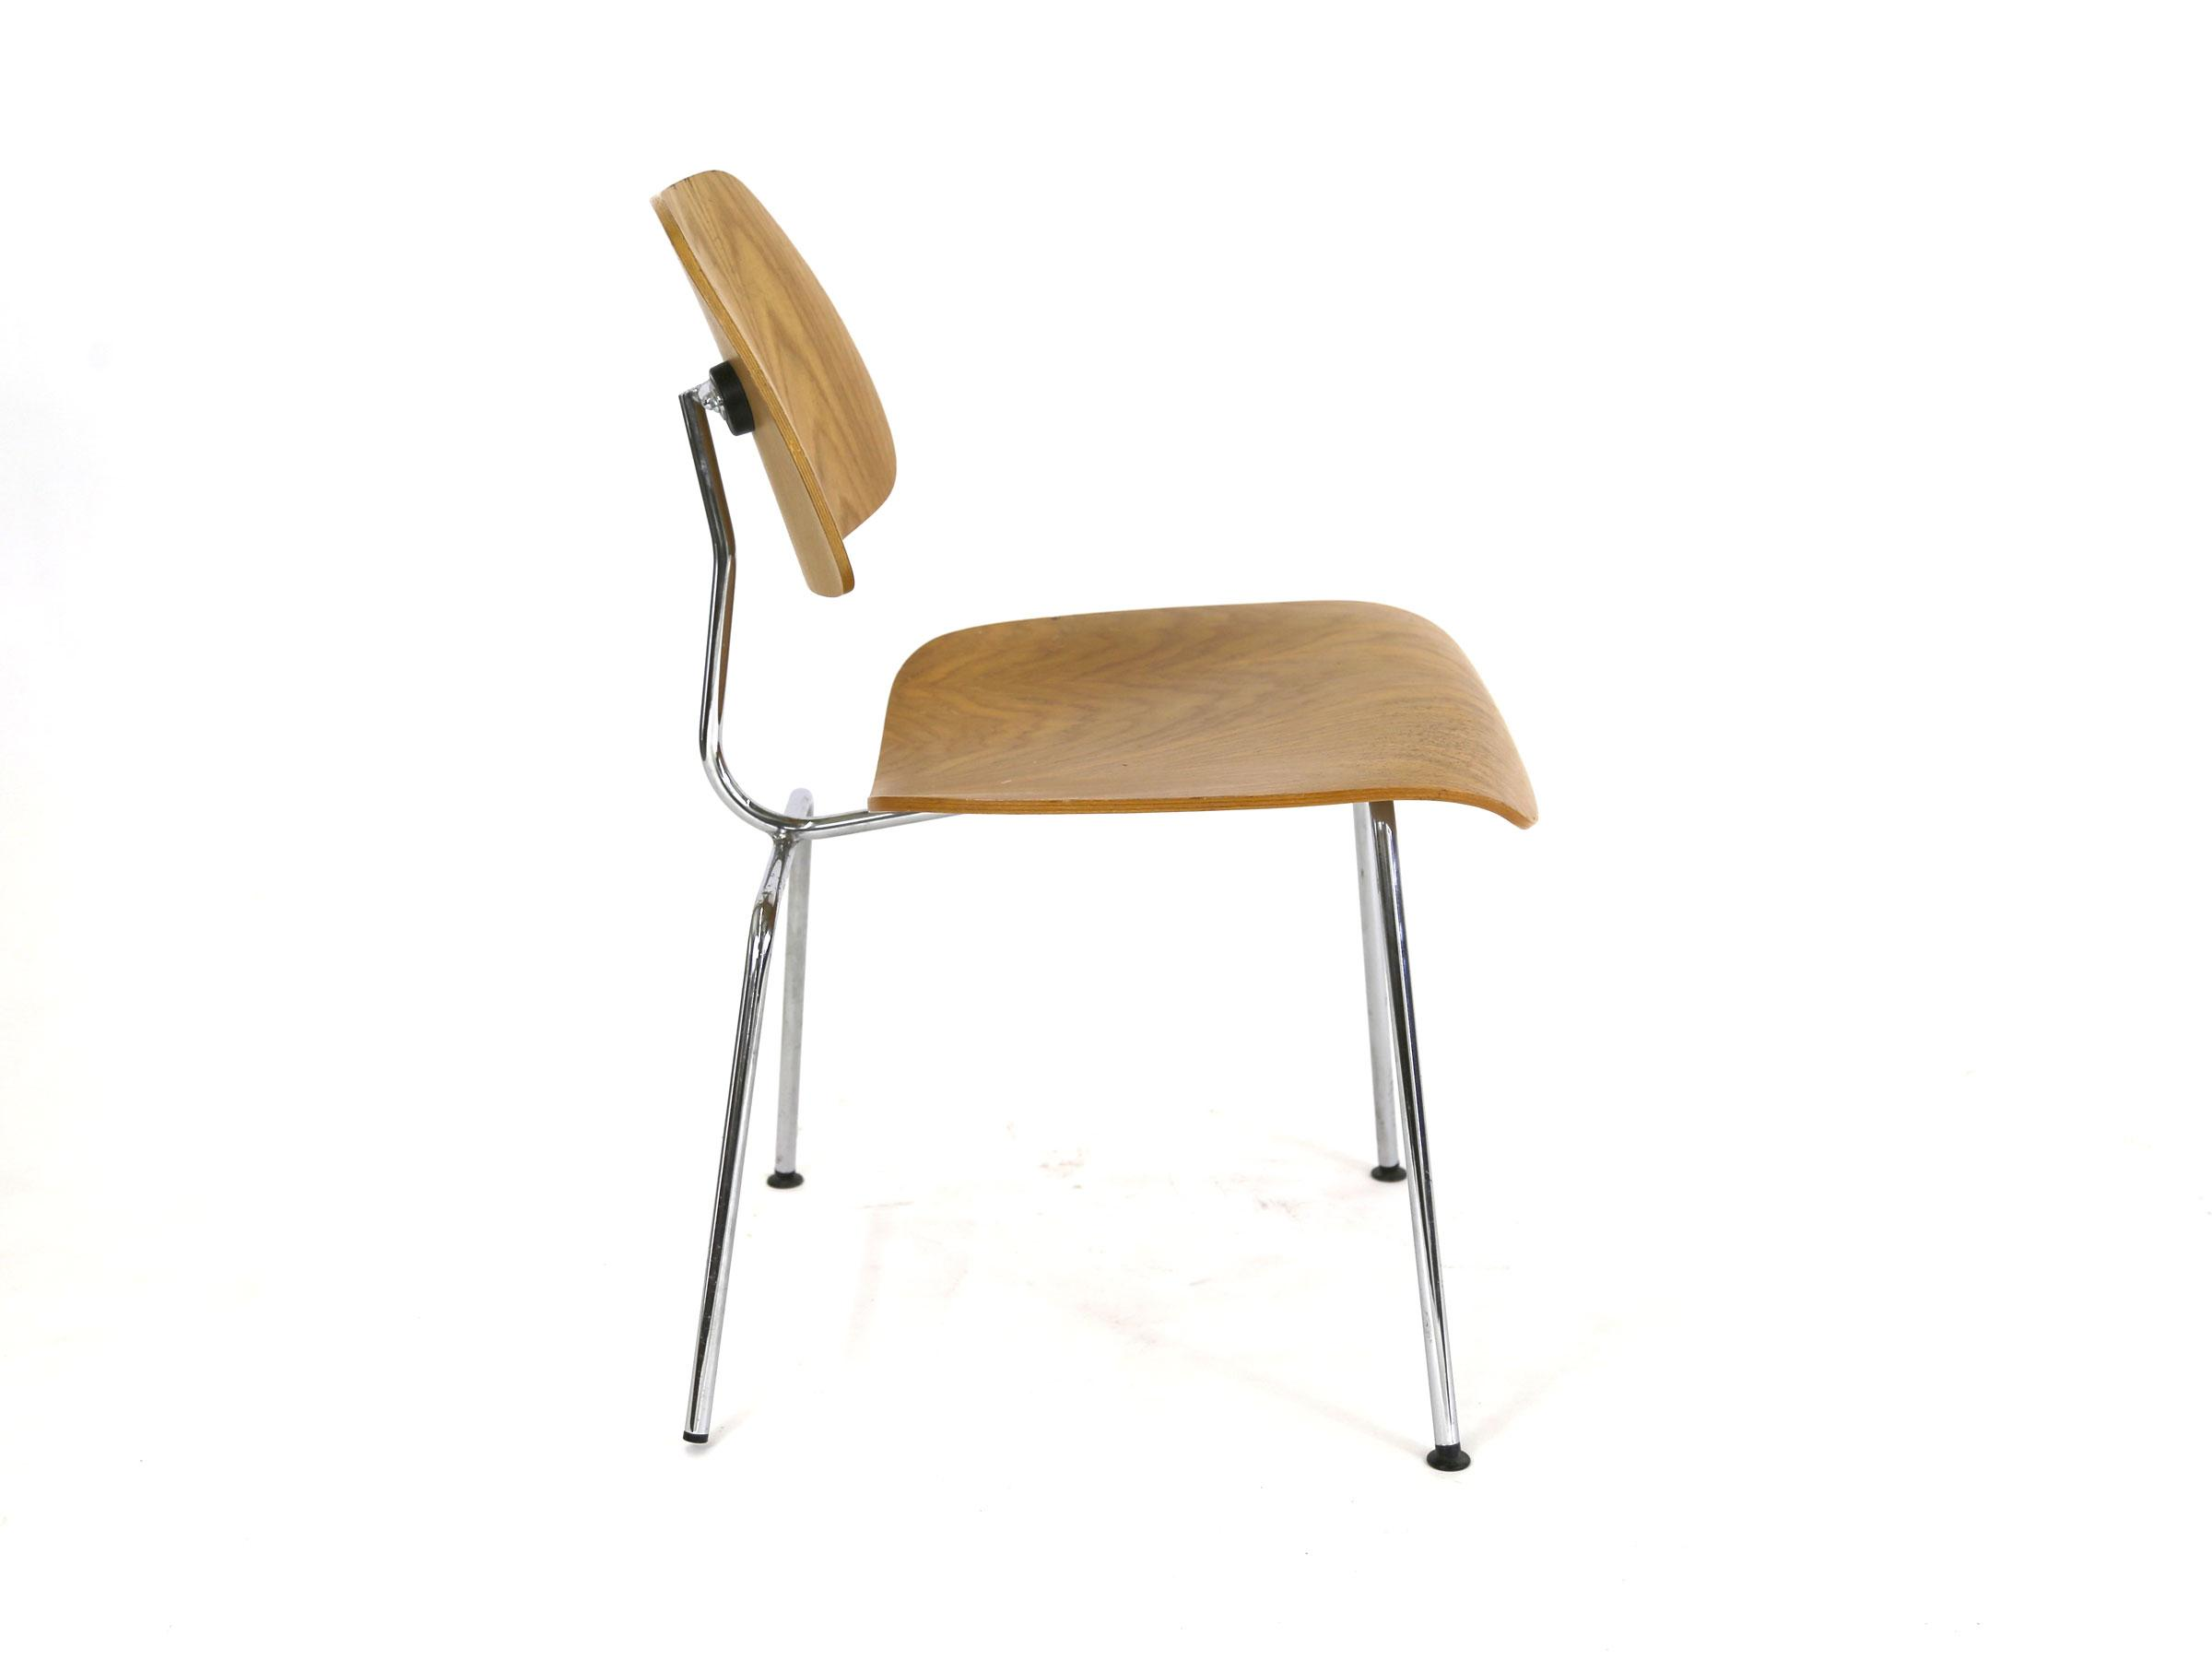 Vintage Eames Chair Molded Plywood Reproduction Chairish : 64f0a9e1 00e1 44a8 84df 8bb7316bd029aspectfitampwidth640ampheight640 from www.chairish.com size 640 x 640 jpeg 13kB